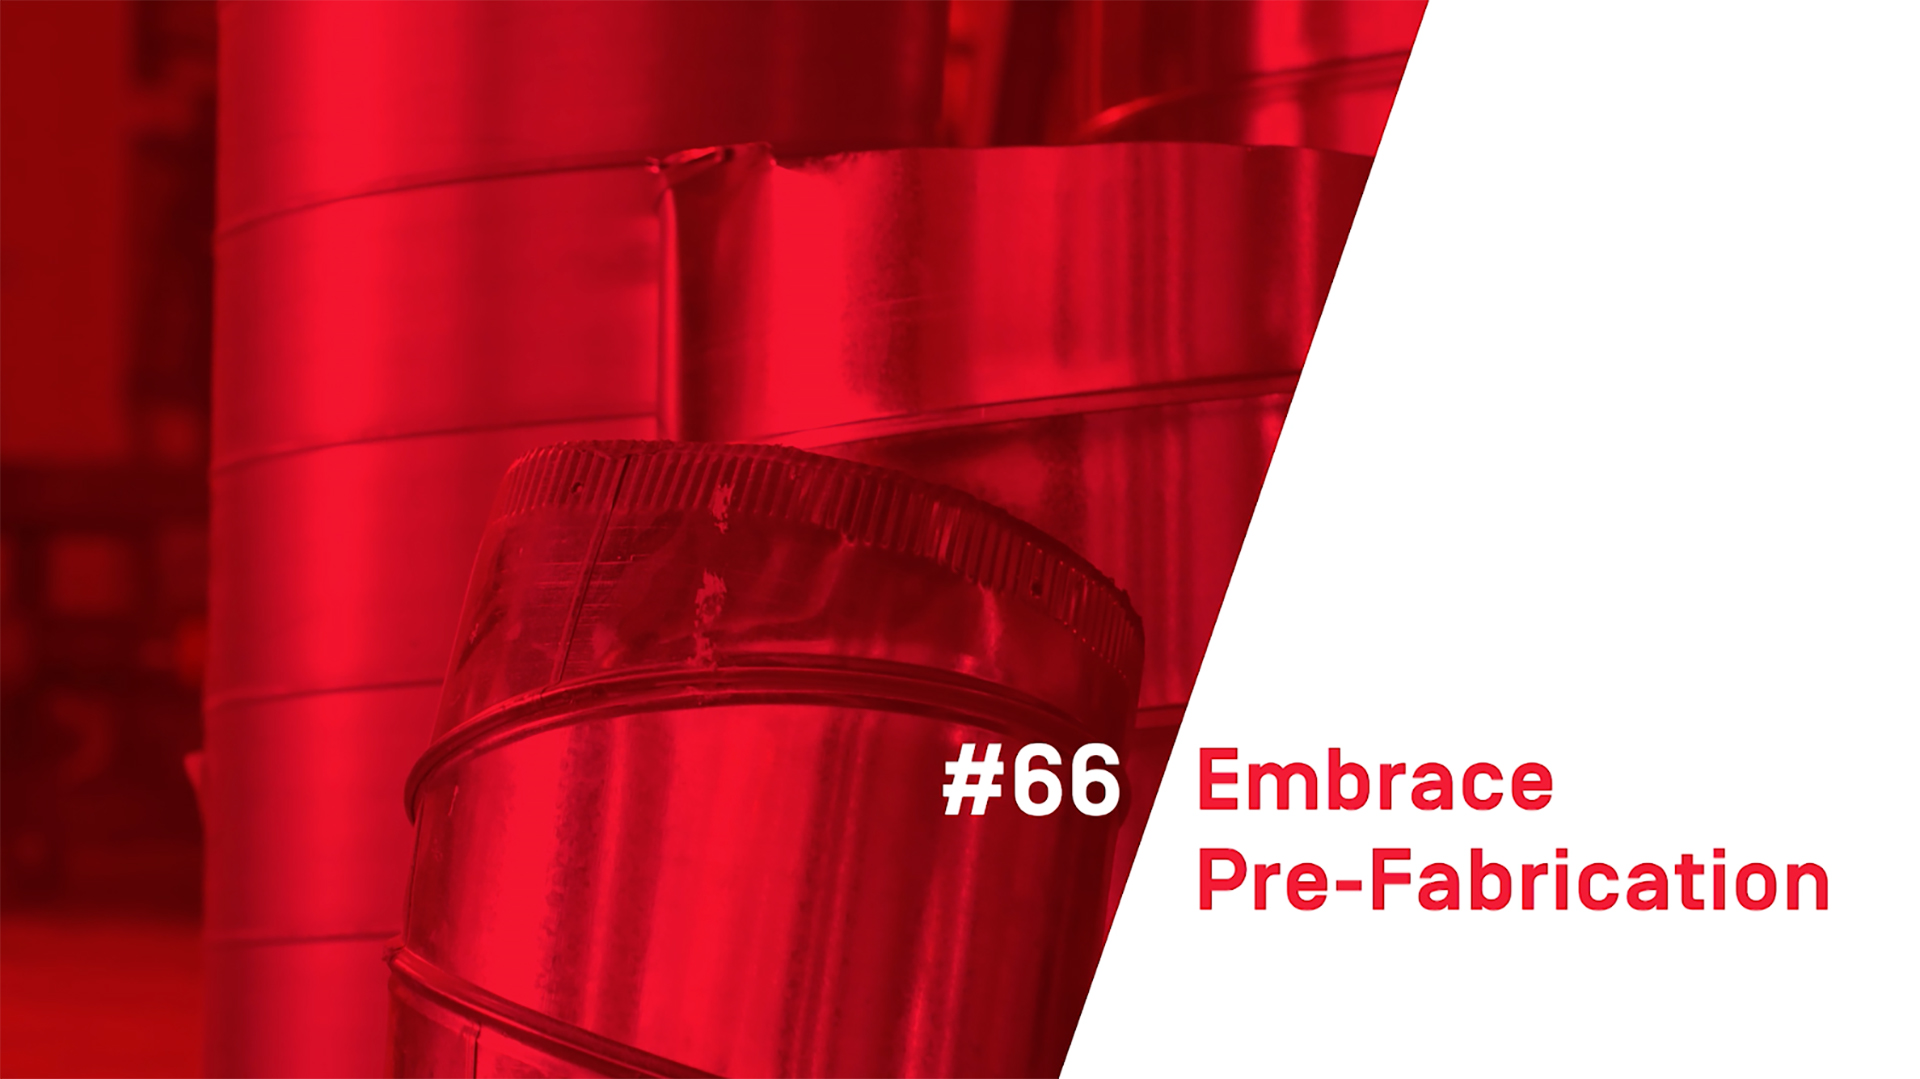 101 Ways To Build Smarter – #66 Embrace Pre-Fabrication